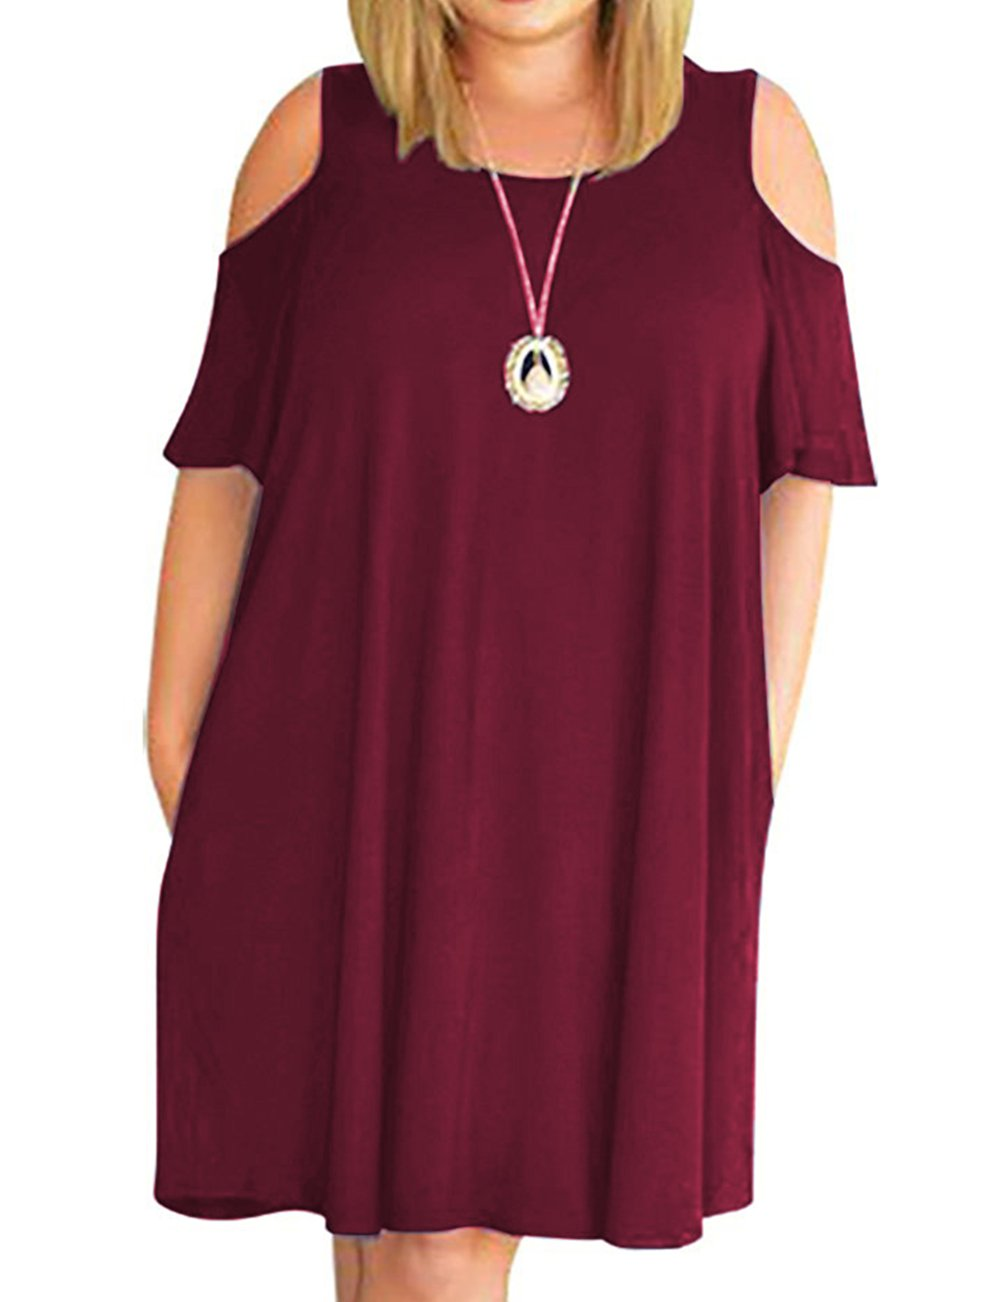 Kancystore Women's Summer Short Sleeve Cut Out Cold Shoulder Loose Fit Dress Top Wine 1X